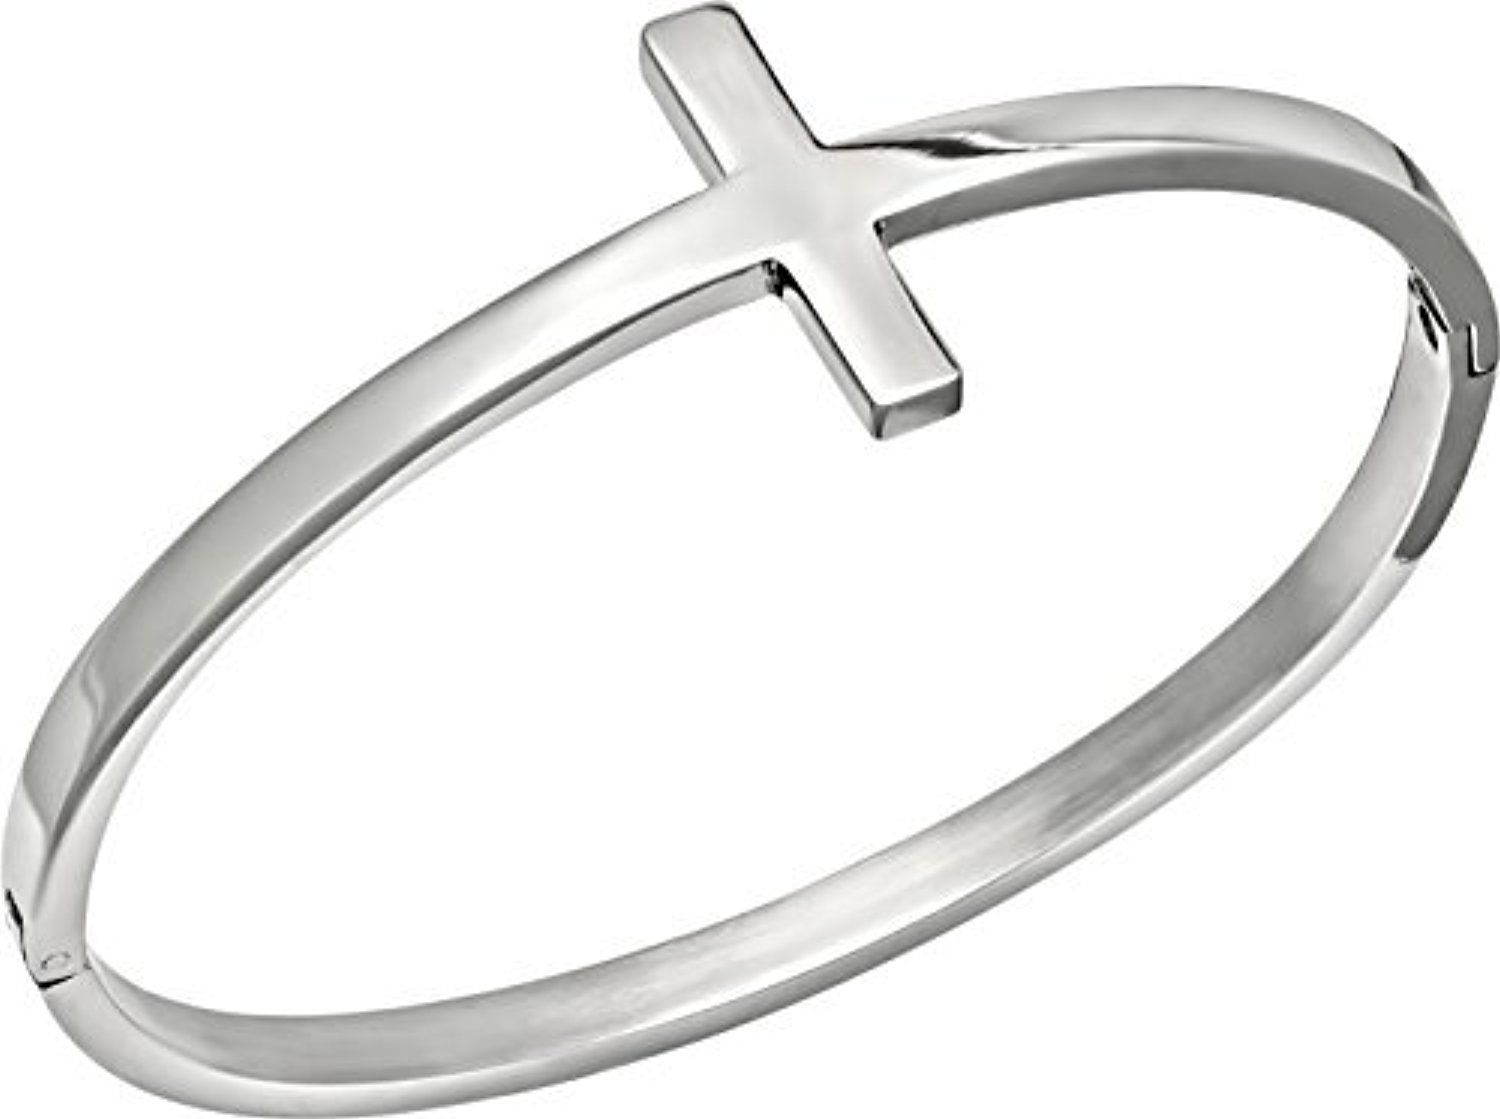 7.5 Polished Stainless Steel Sideways Christian Cross Inspirational Bangle Bracelet by Kinzie Fashion -- Awesome products selected by Anna Churchill